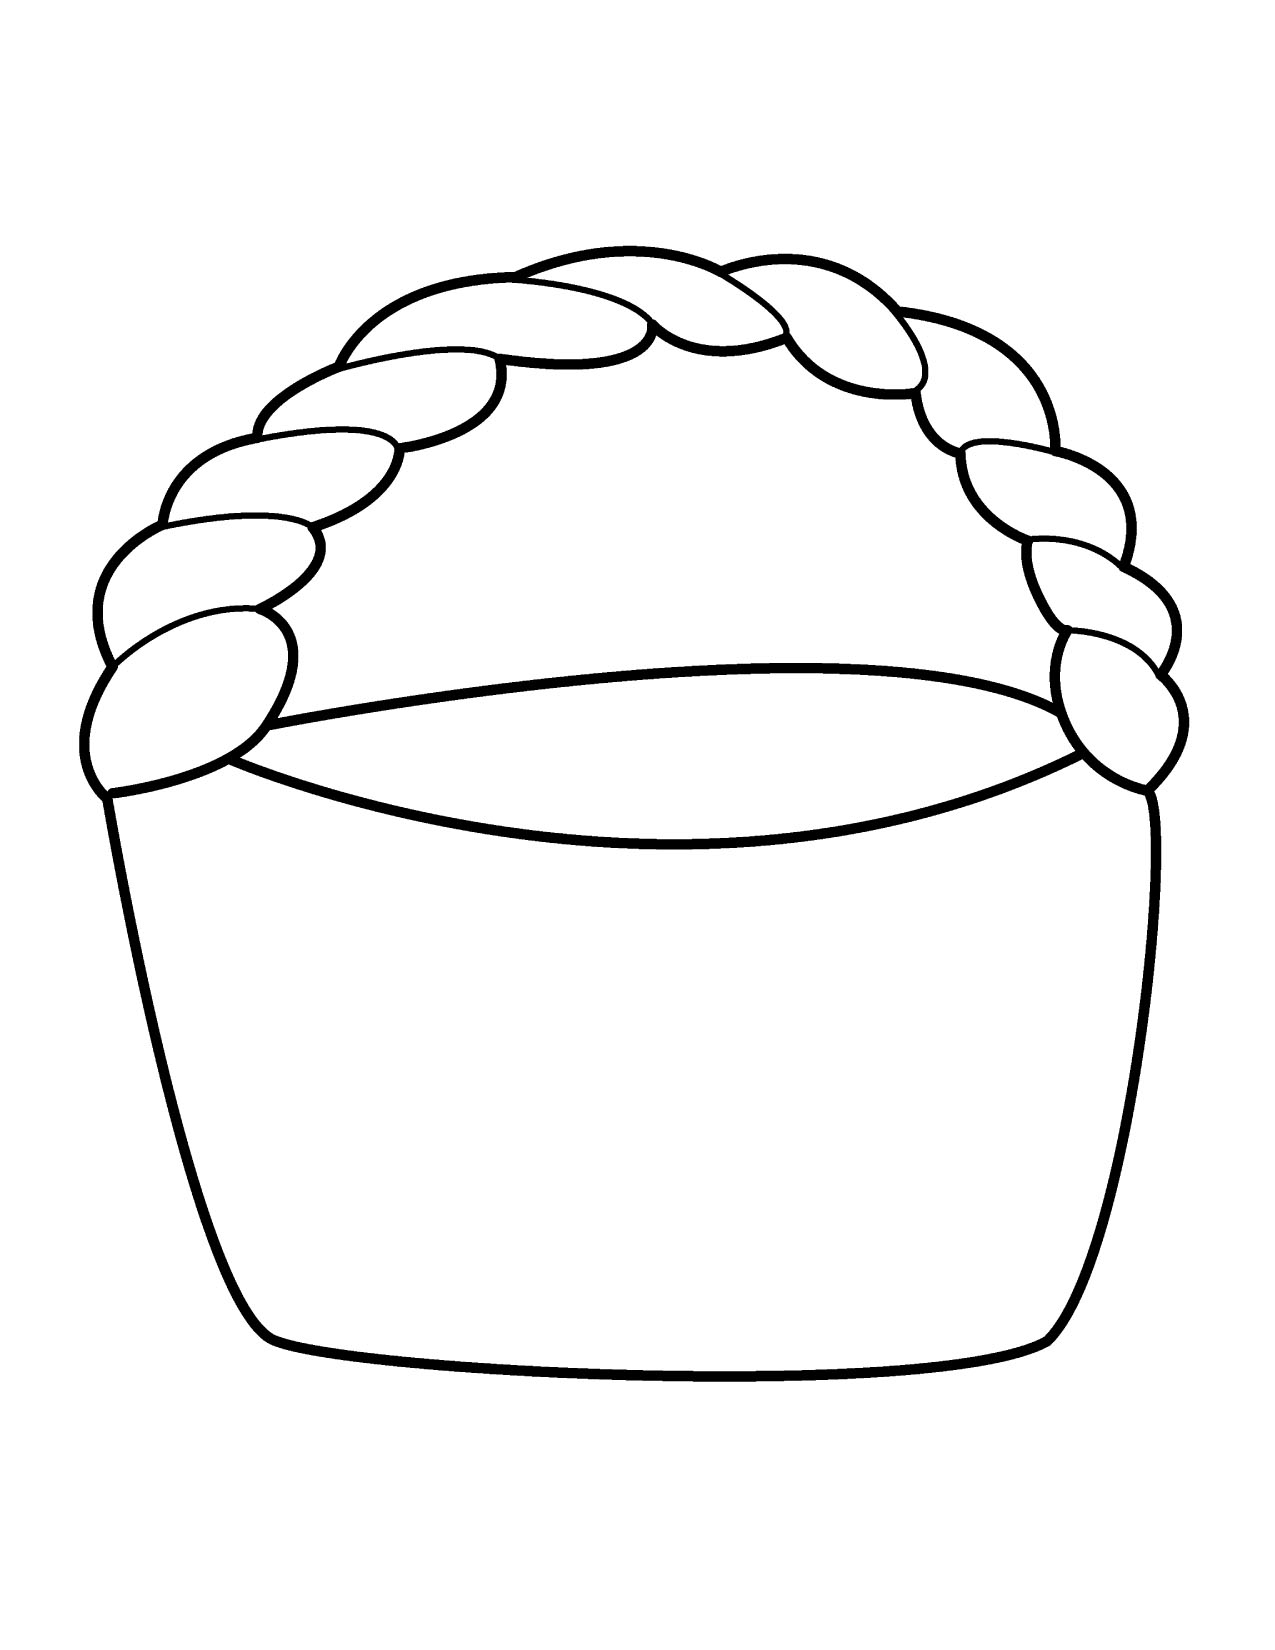 Picture of basket black and white clipart clip art black and white Bread Basket Clipart Black And White | Clipart Panda - Free ... clip art black and white